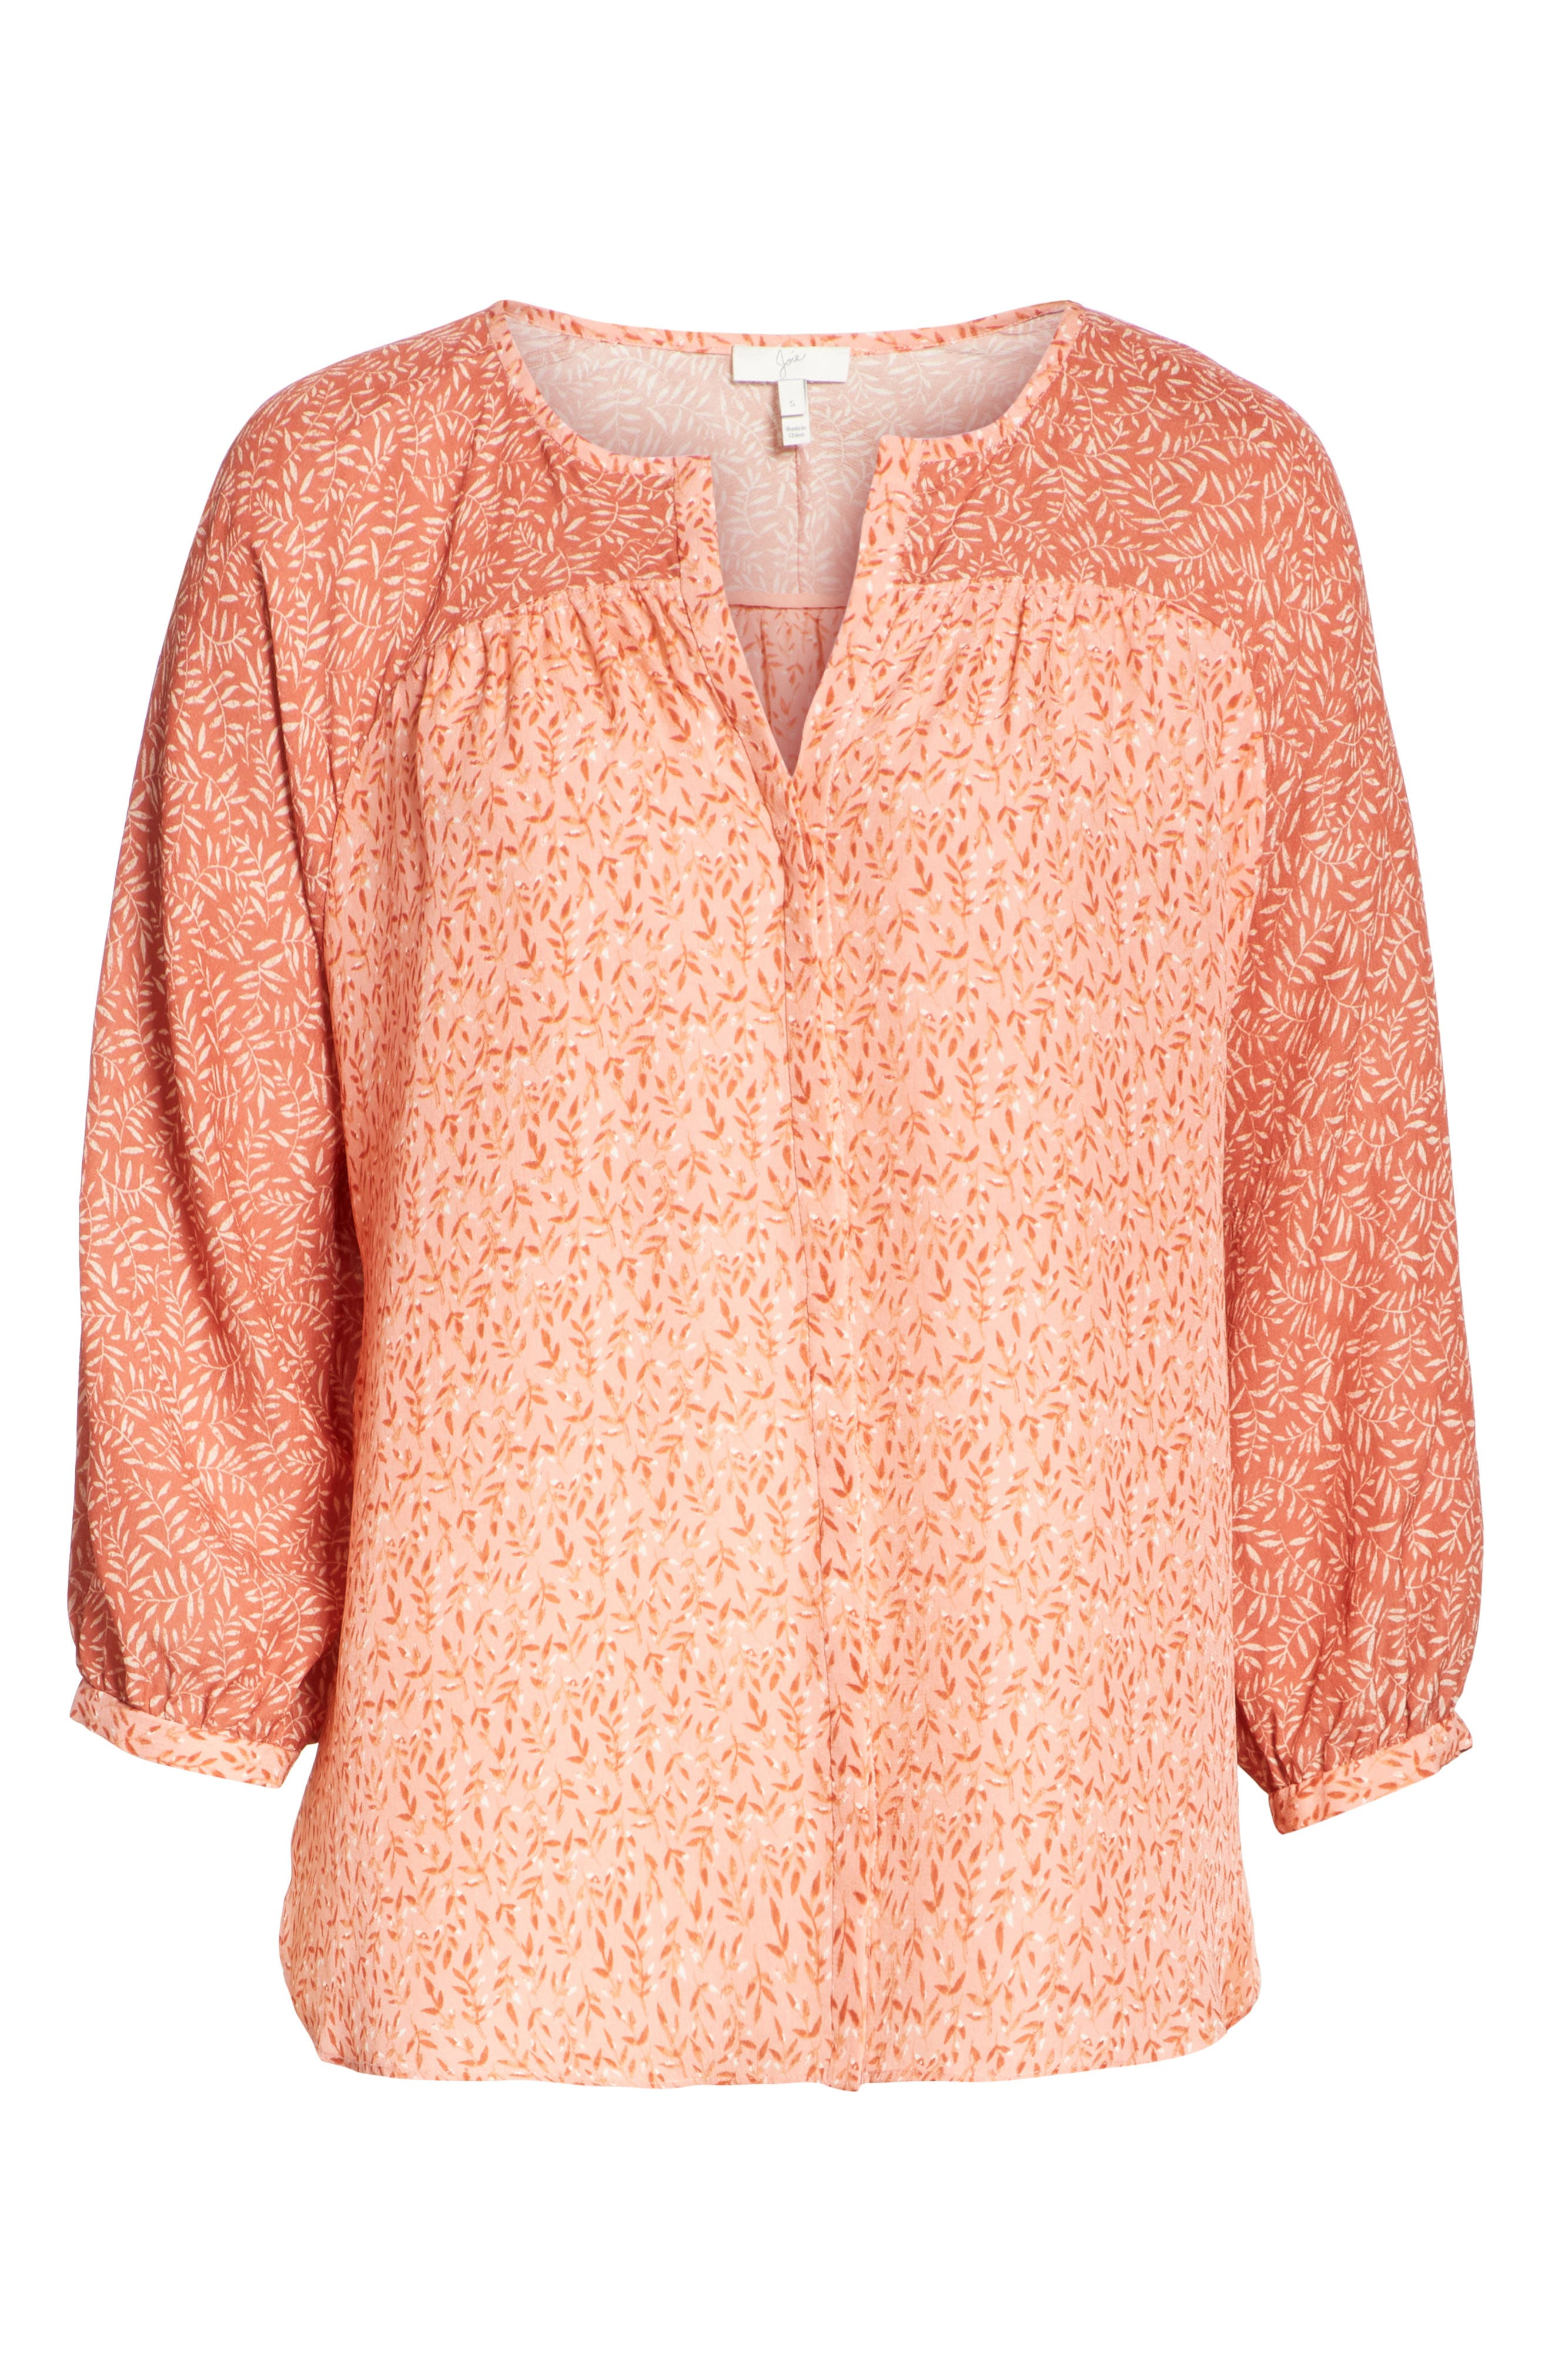 JOIE,                             Jafeth Reverse Pattern Silk Peasant Top,                             Alternate thumbnail 6, color,                             609